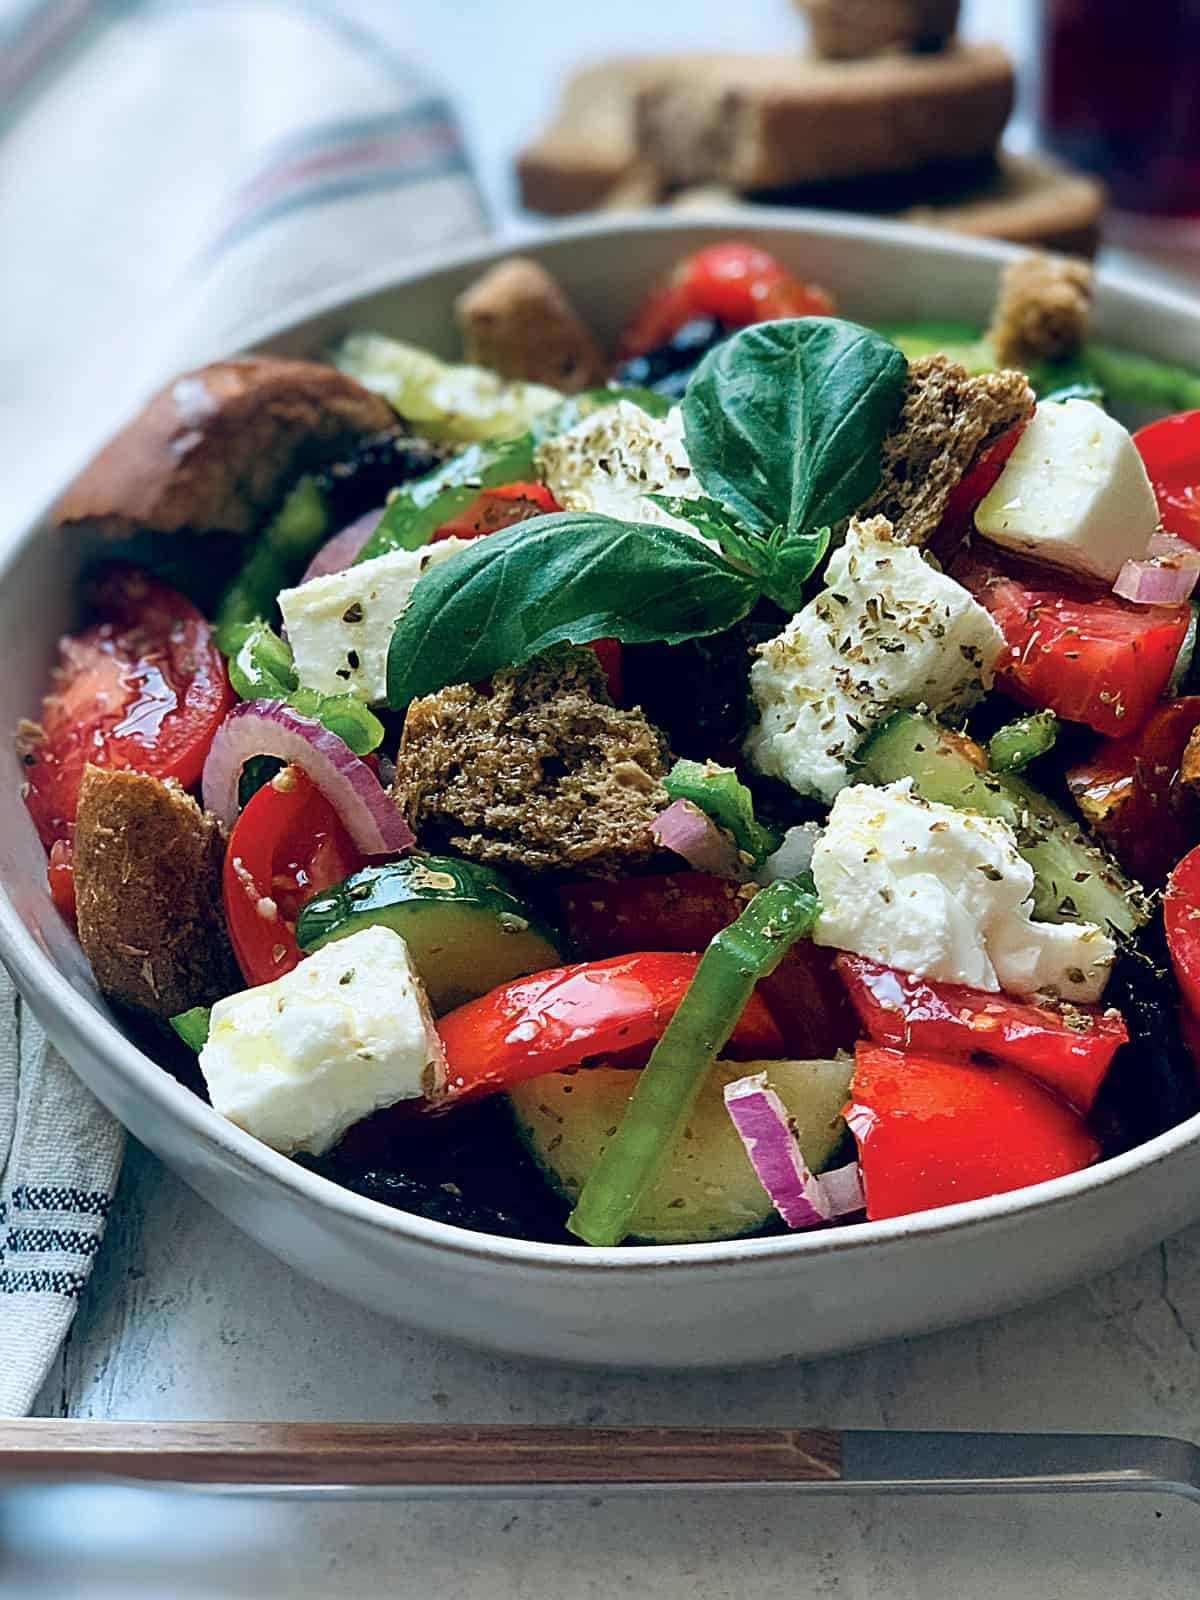 A Greek salad in a white plate with a serving spoon an olive oil bottle and fresh basil leaves.